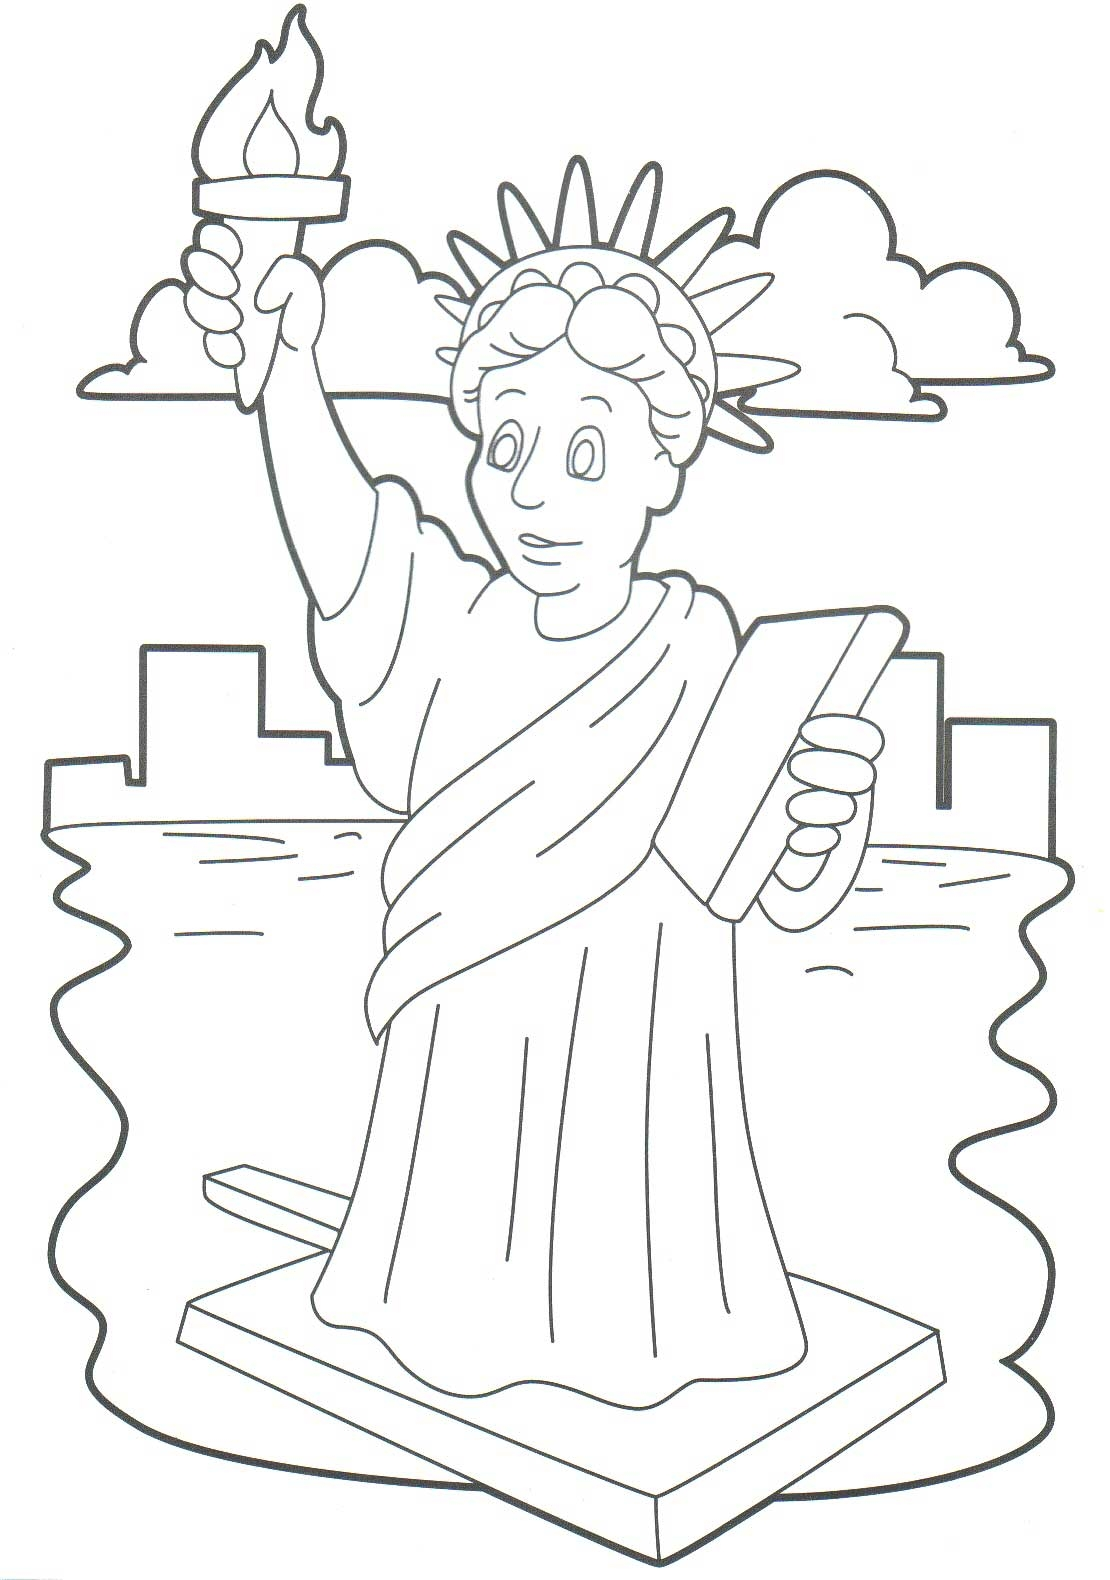 1110x1580 Monumental Statue Of Liberty Coloring Page Pag